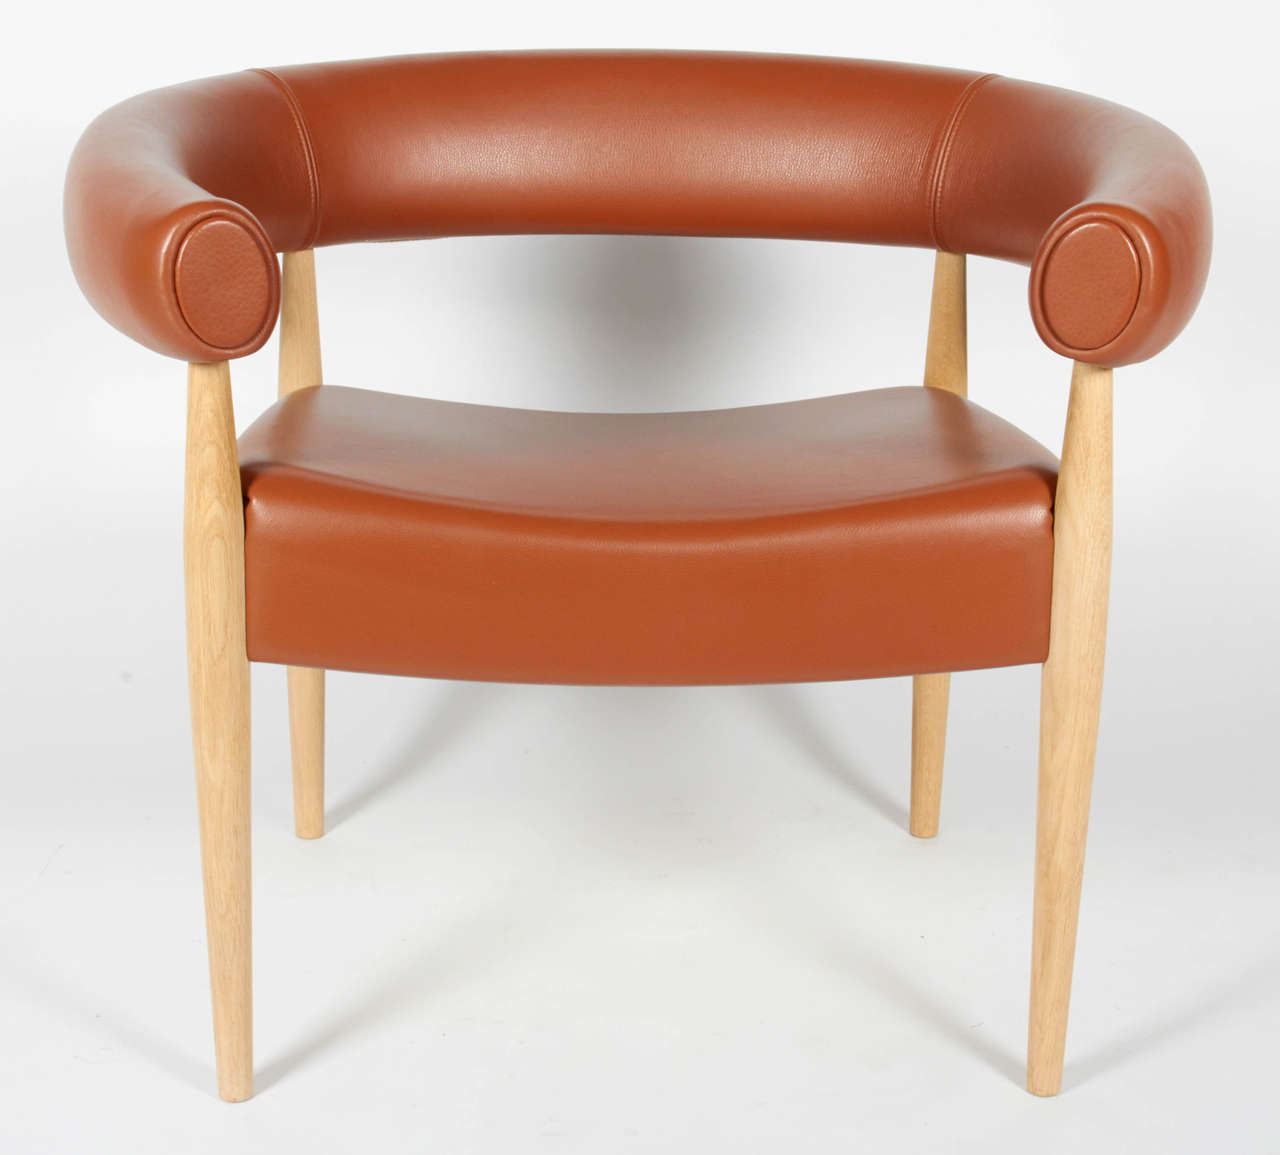 Charmant A Wonderful And Exceptionally Comfortable Pair Of Lounge Chairs By Nanna  Ditzel. The Original Design